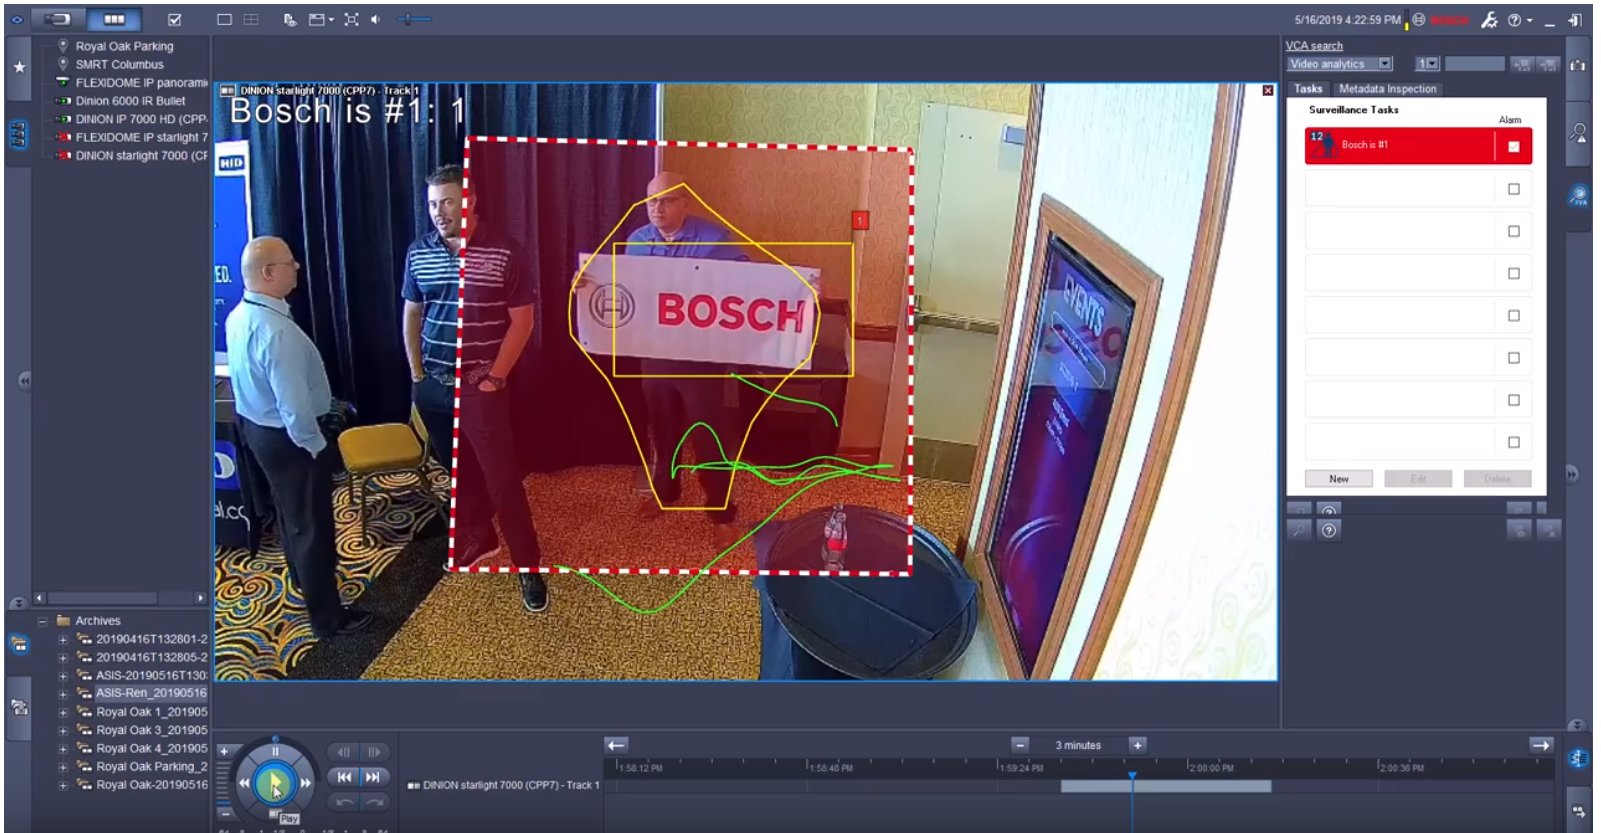 Bosch Camera Trainer video thumbnail- Trinklein